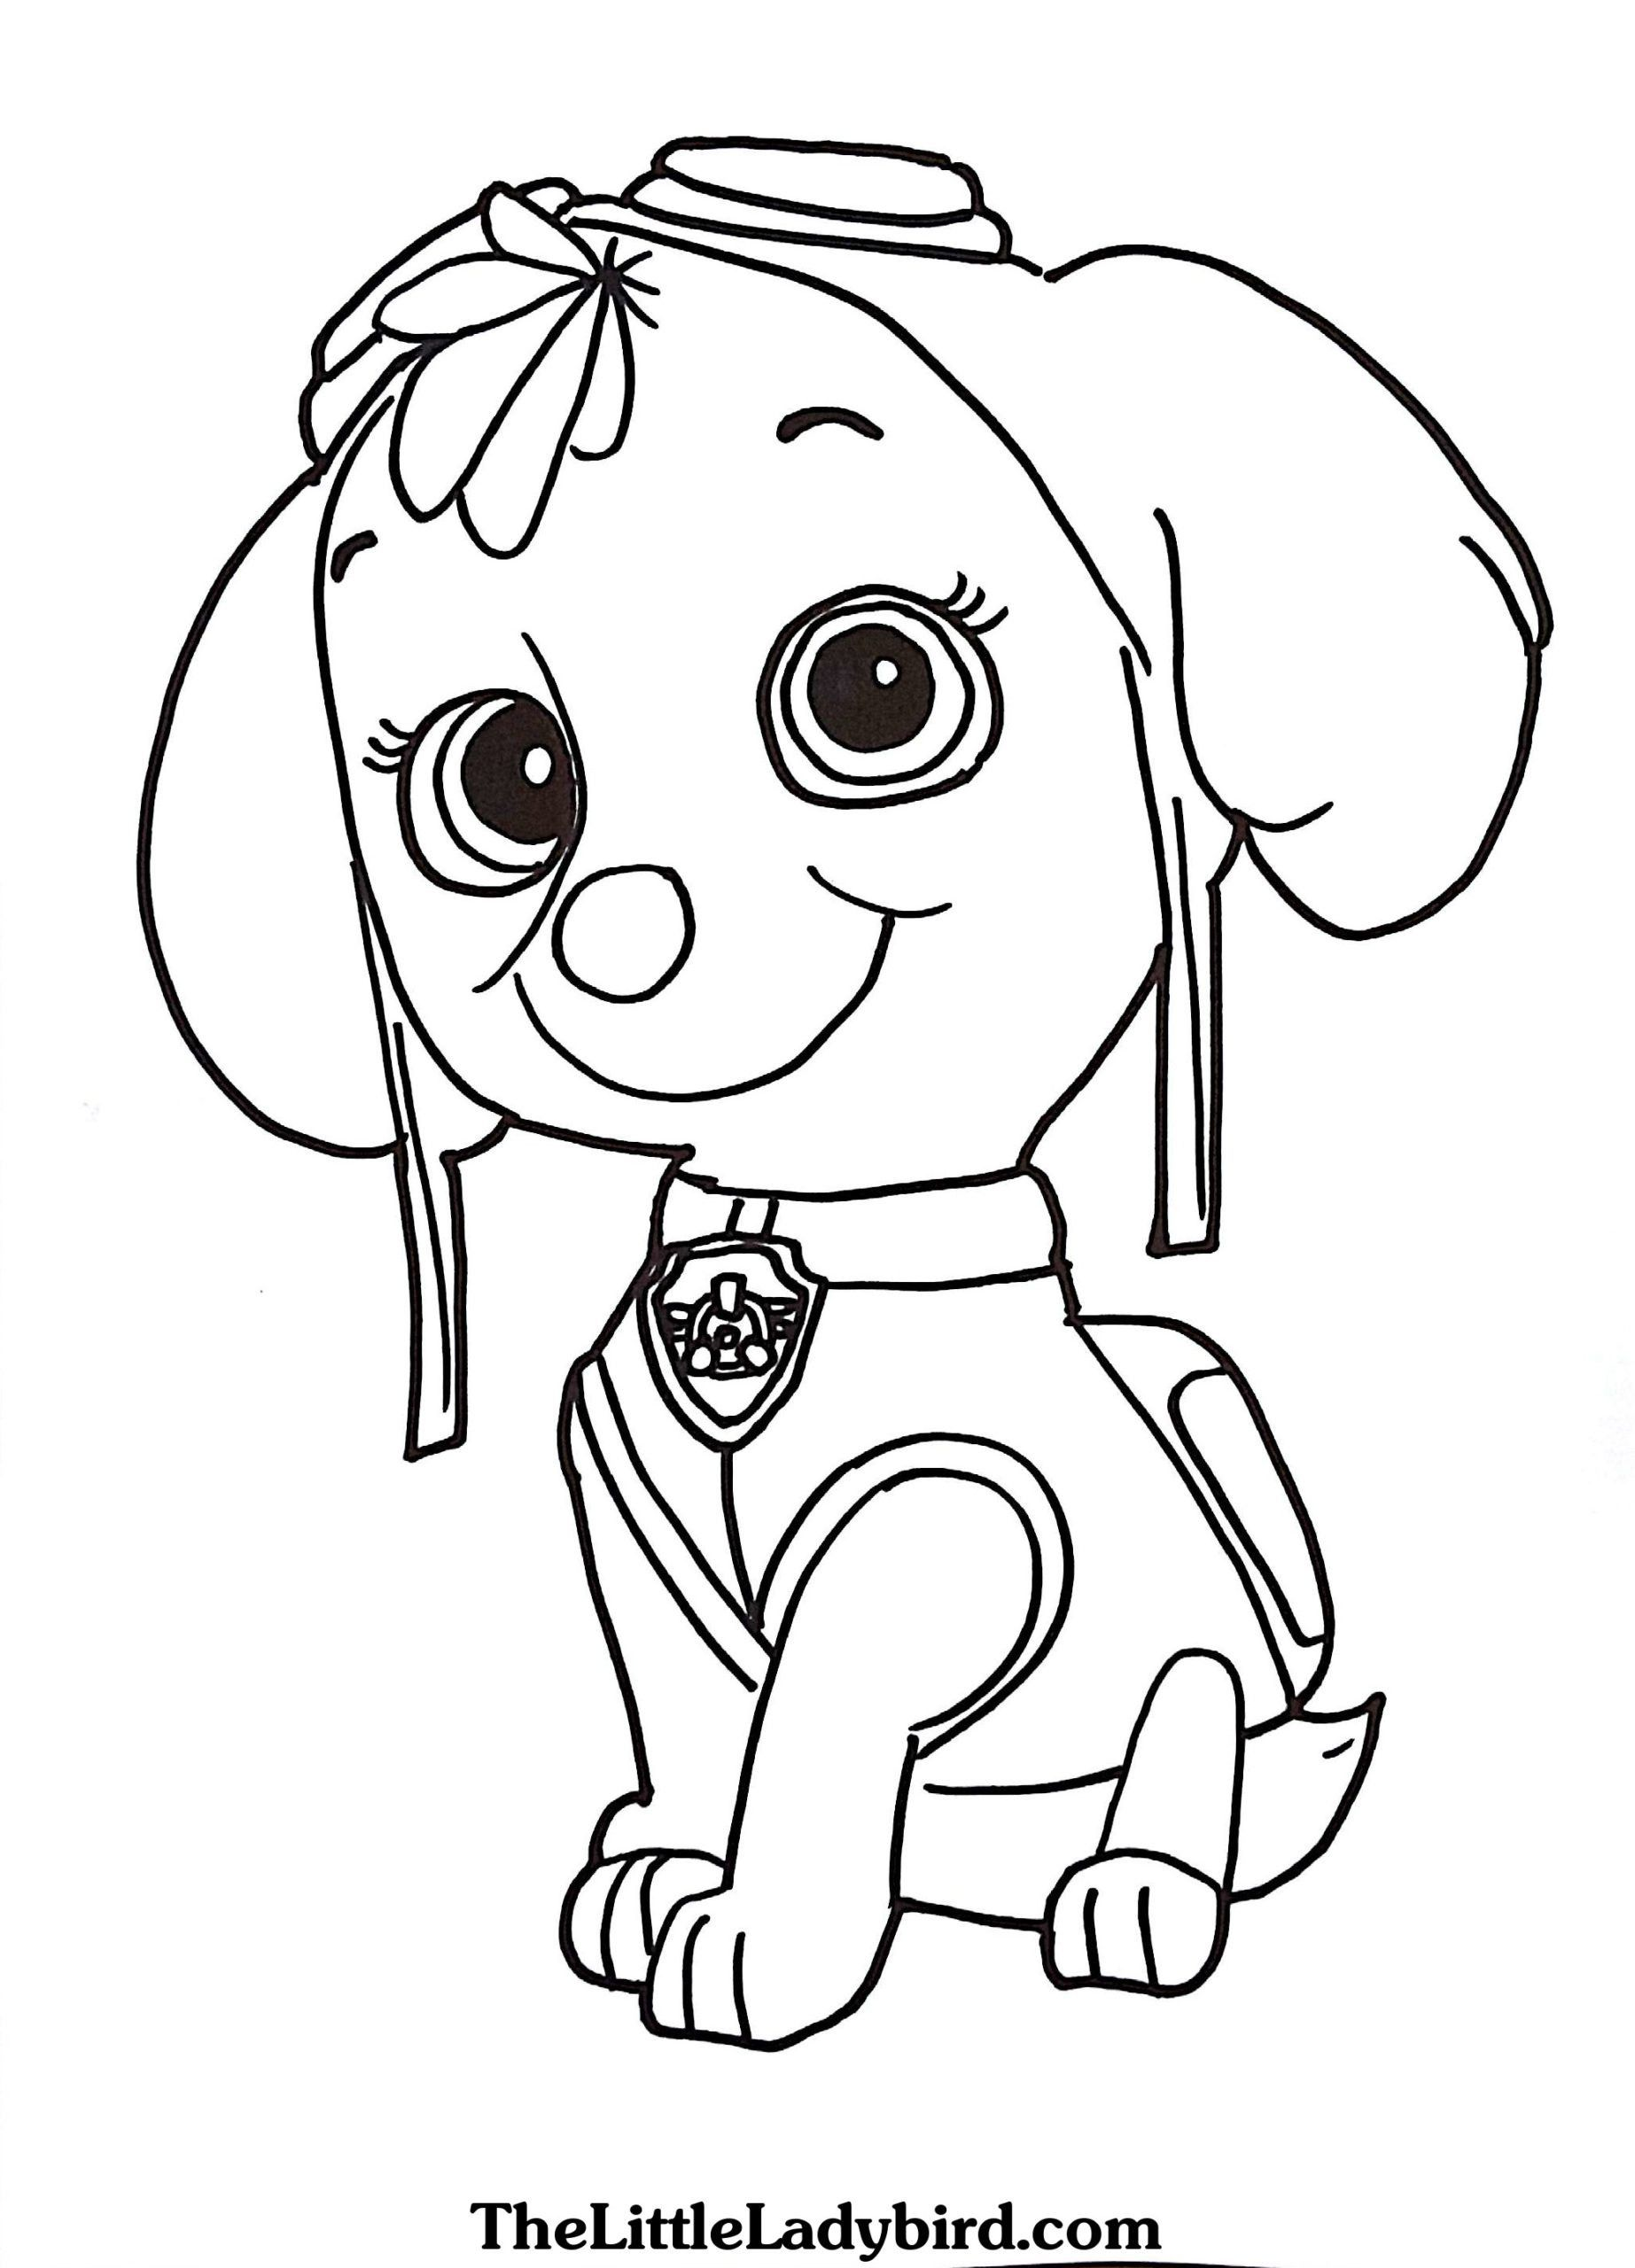 - Pin On Paw Patrol Coloring Pages